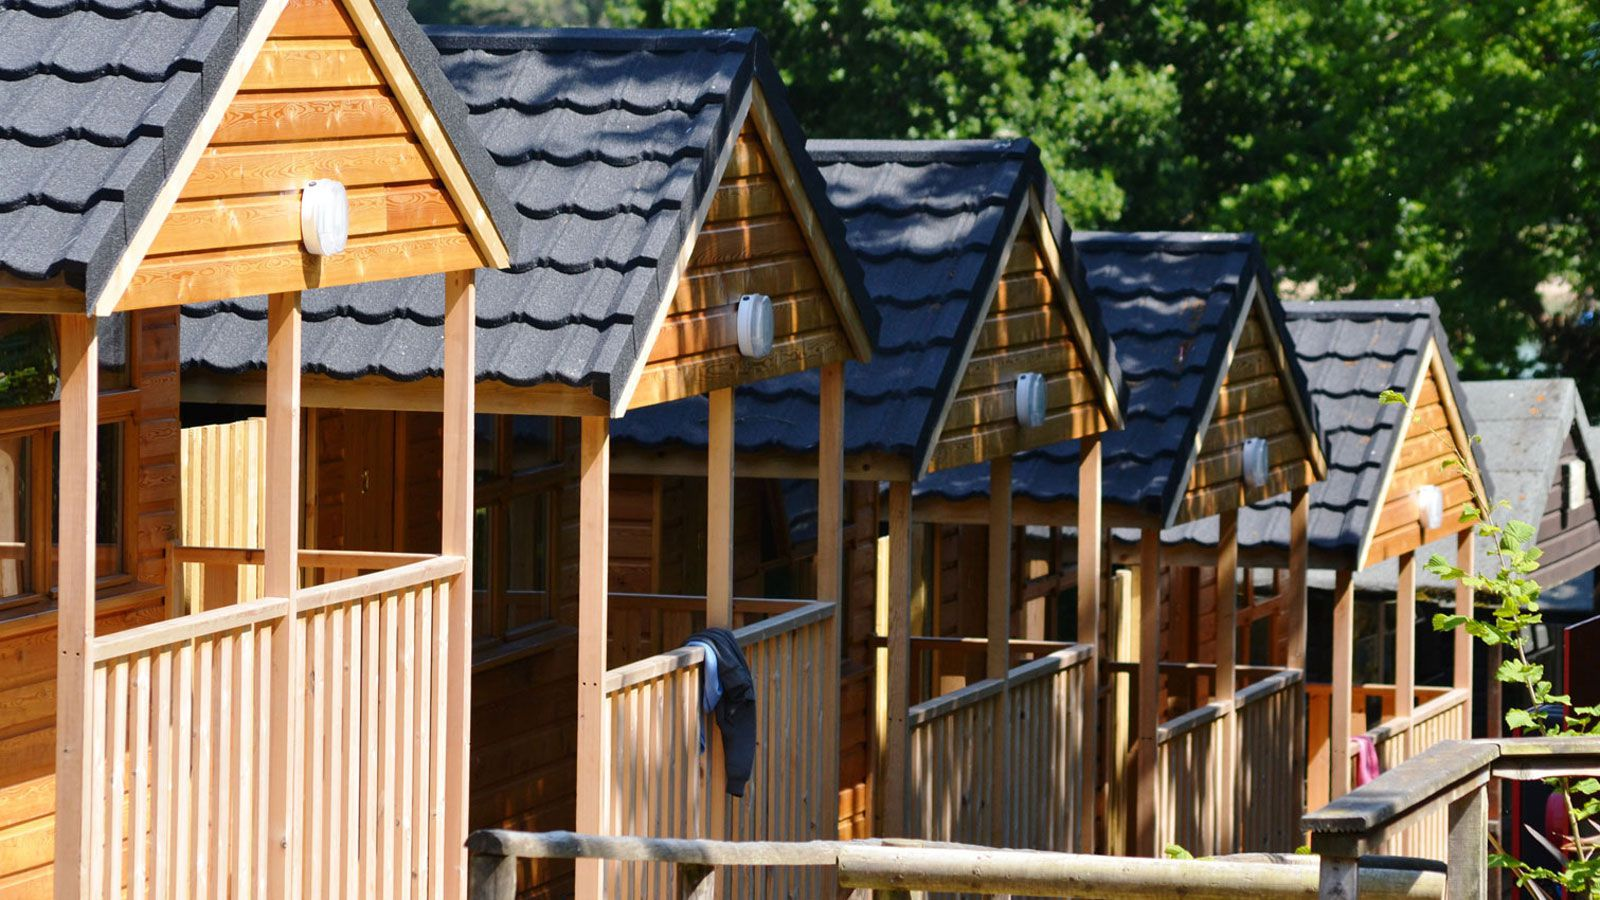 Pgl little canada adventure holidays and summer camps on isle of wight